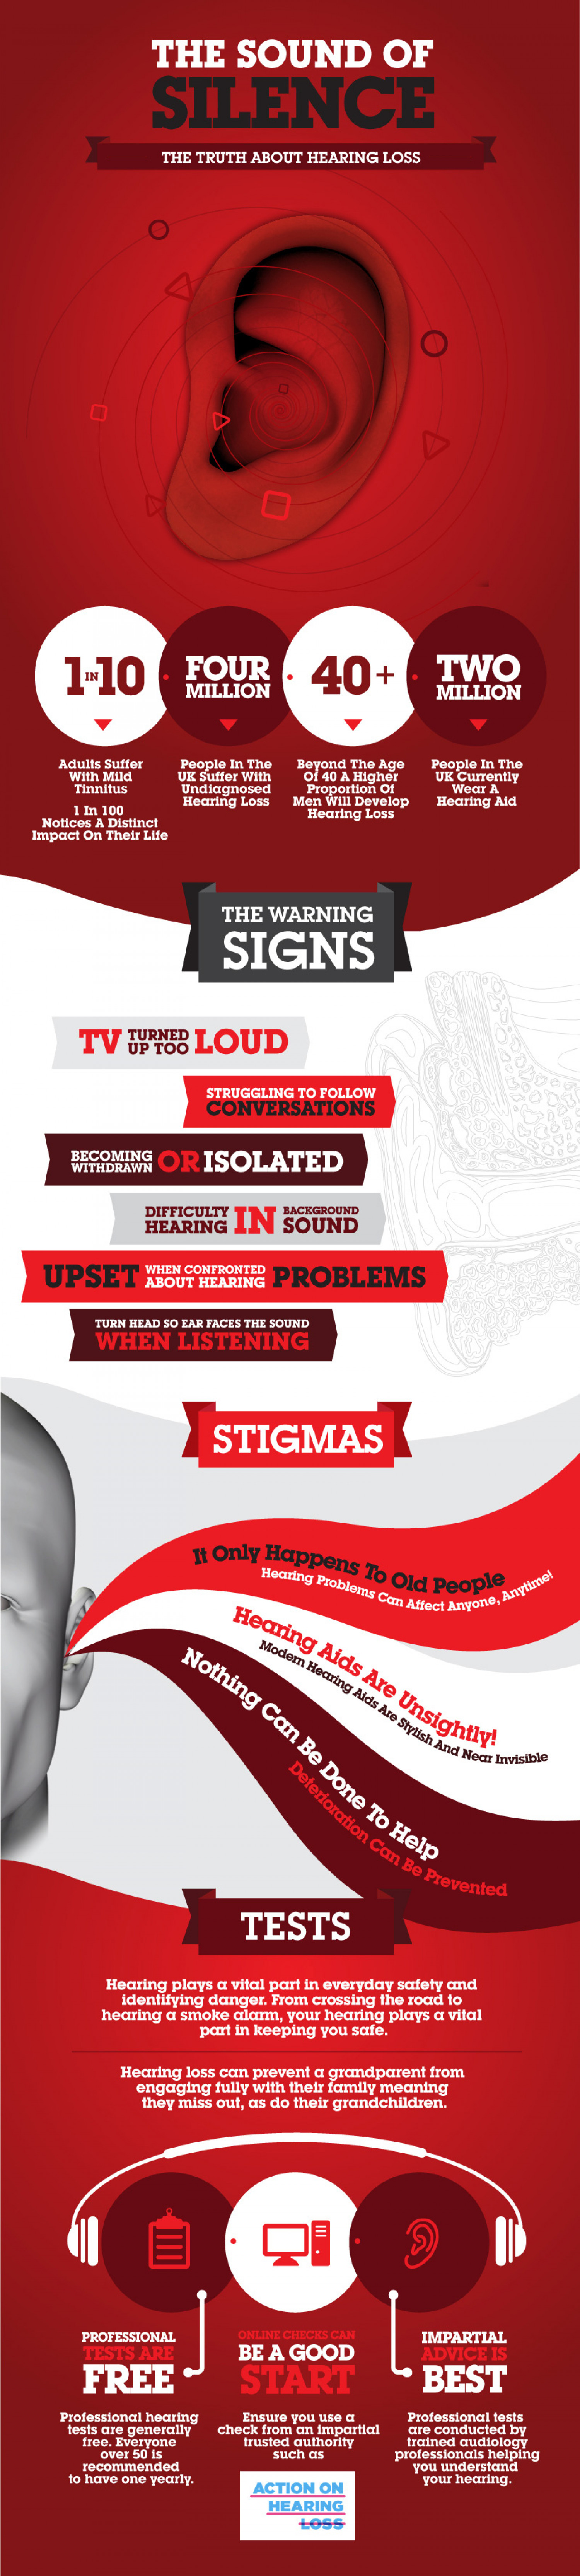 The Sound of Silence Infographic